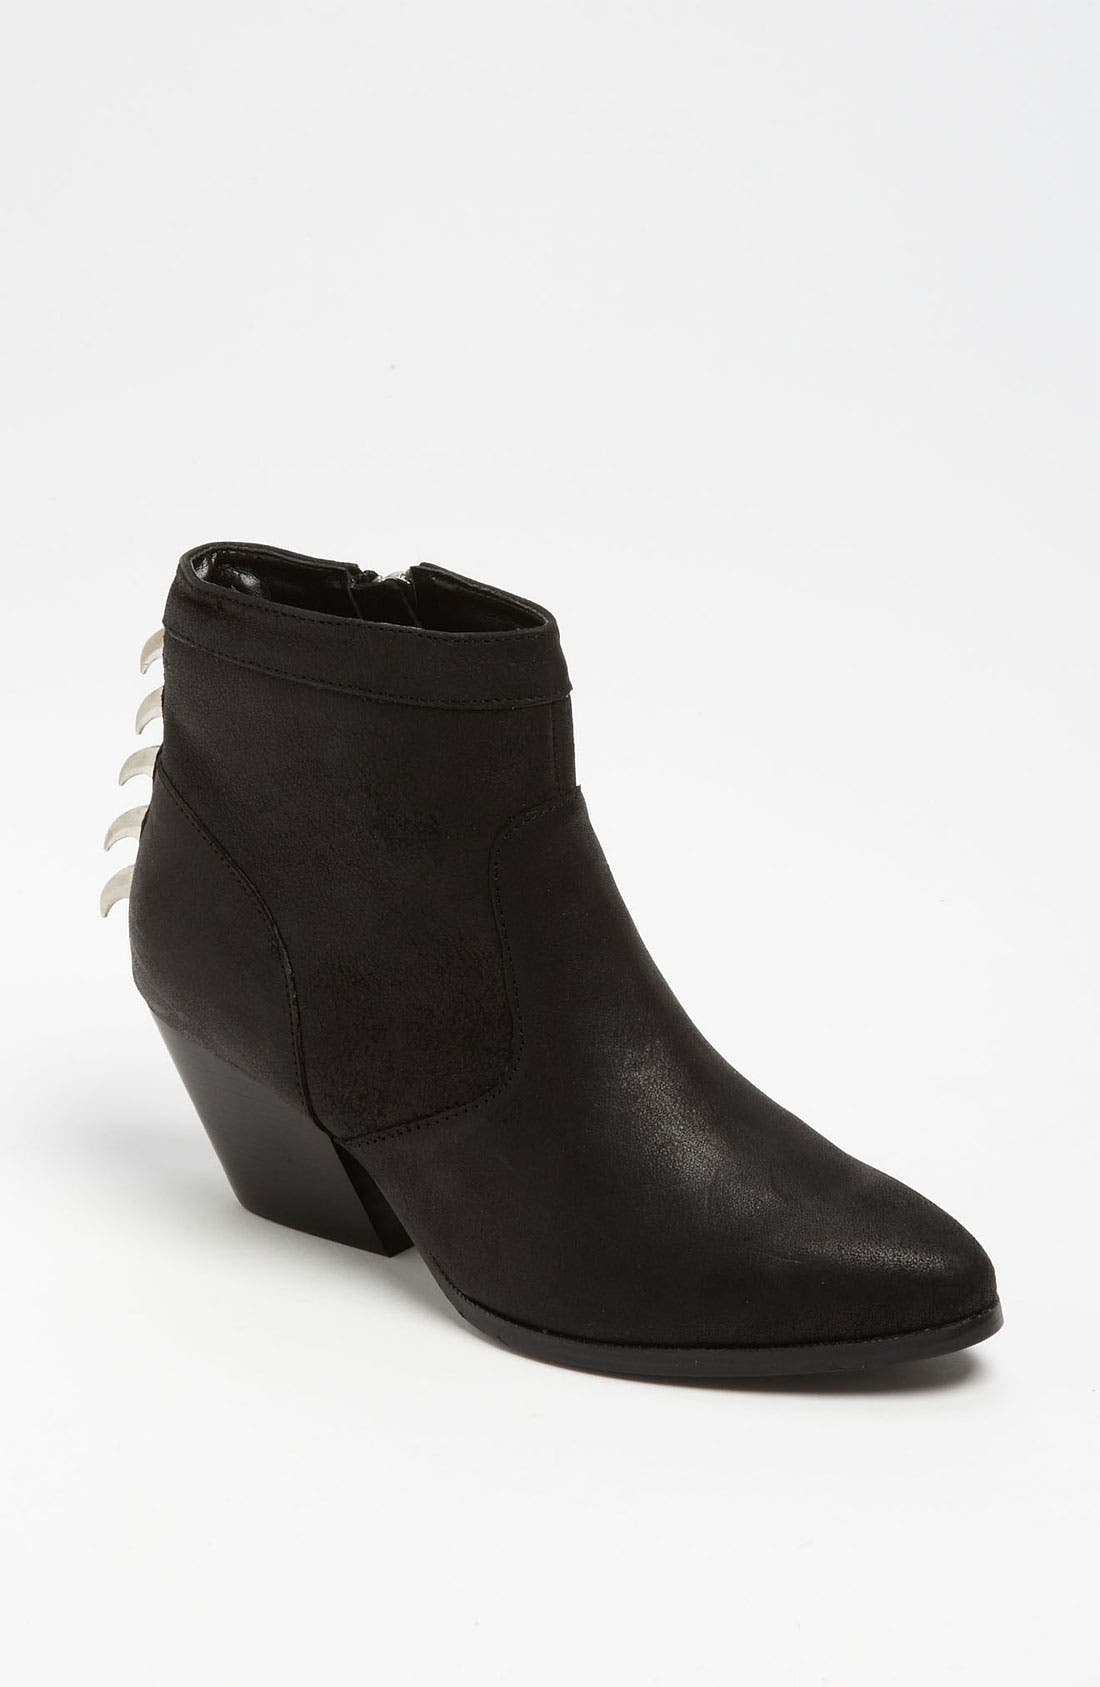 Alternate Image 1 Selected - Dolce Vita 'Rios' Bootie